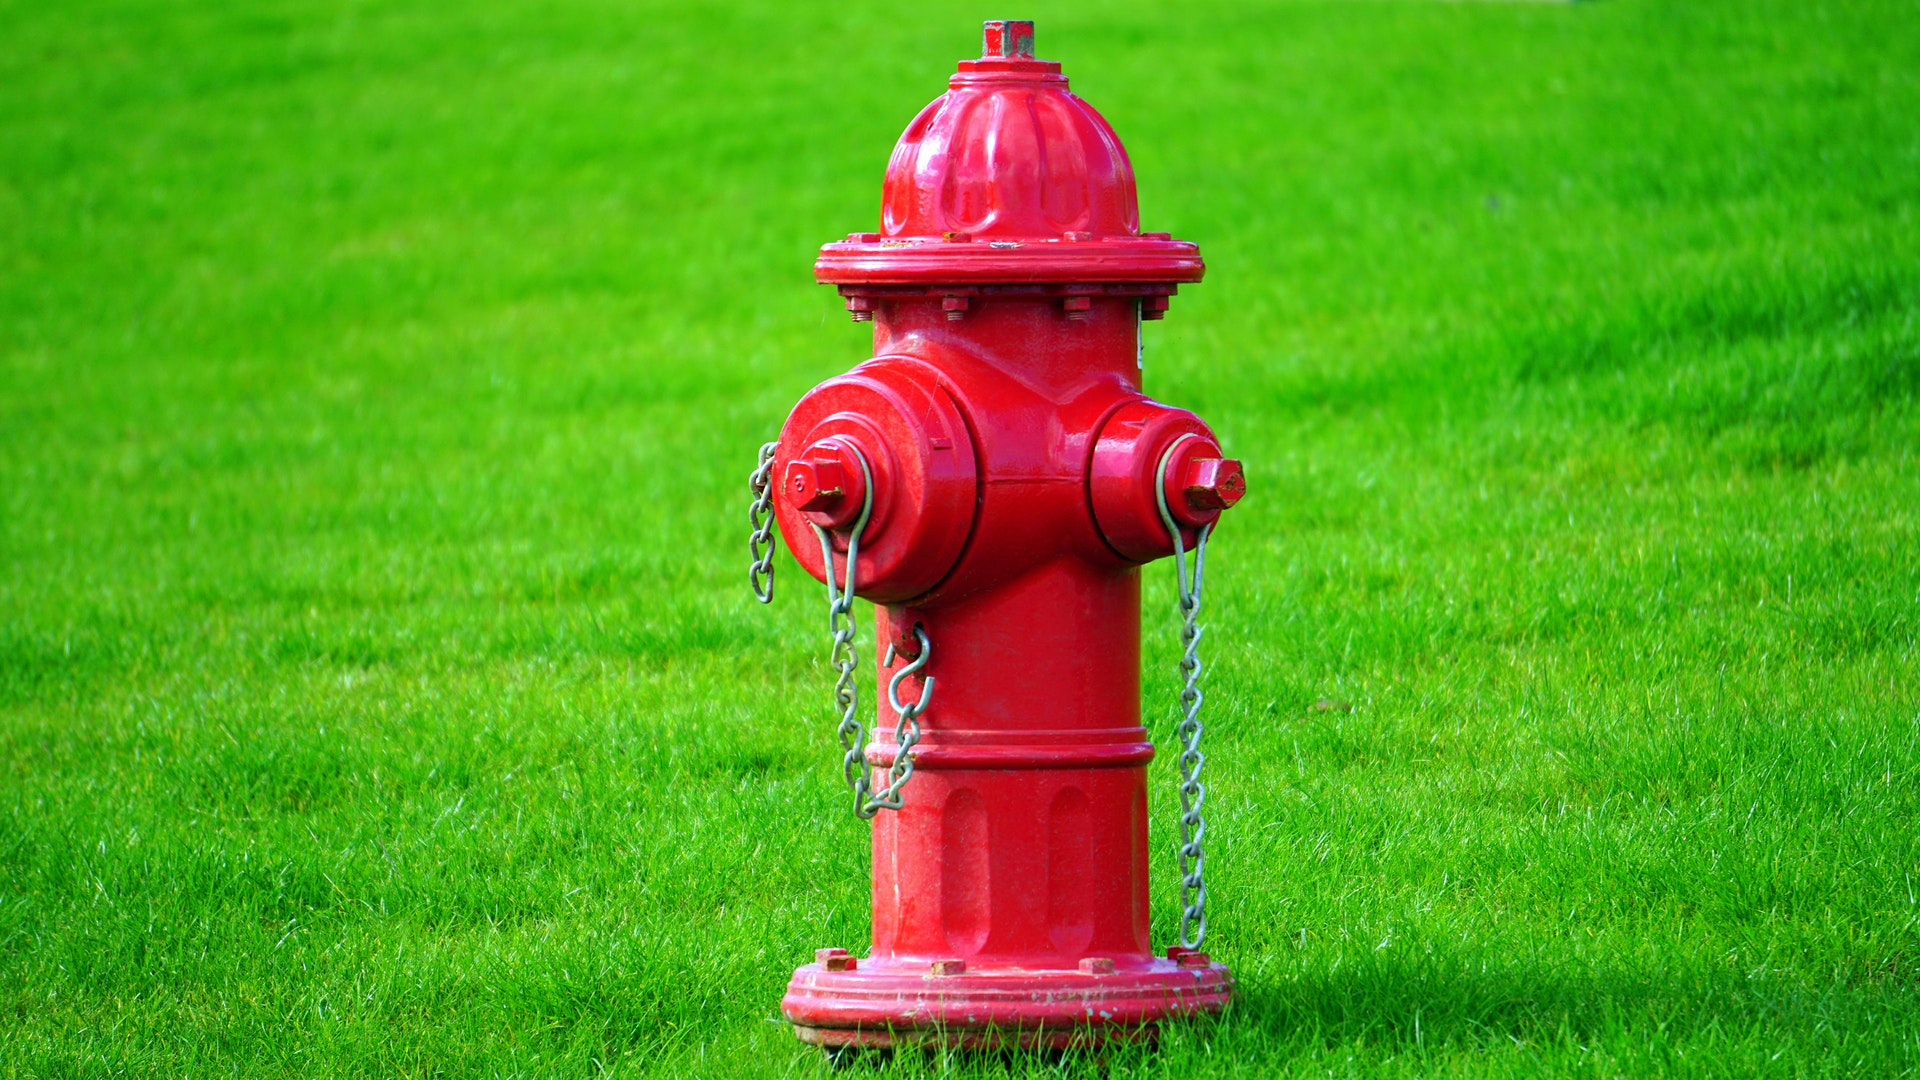 Hydrant to sniff and pee on